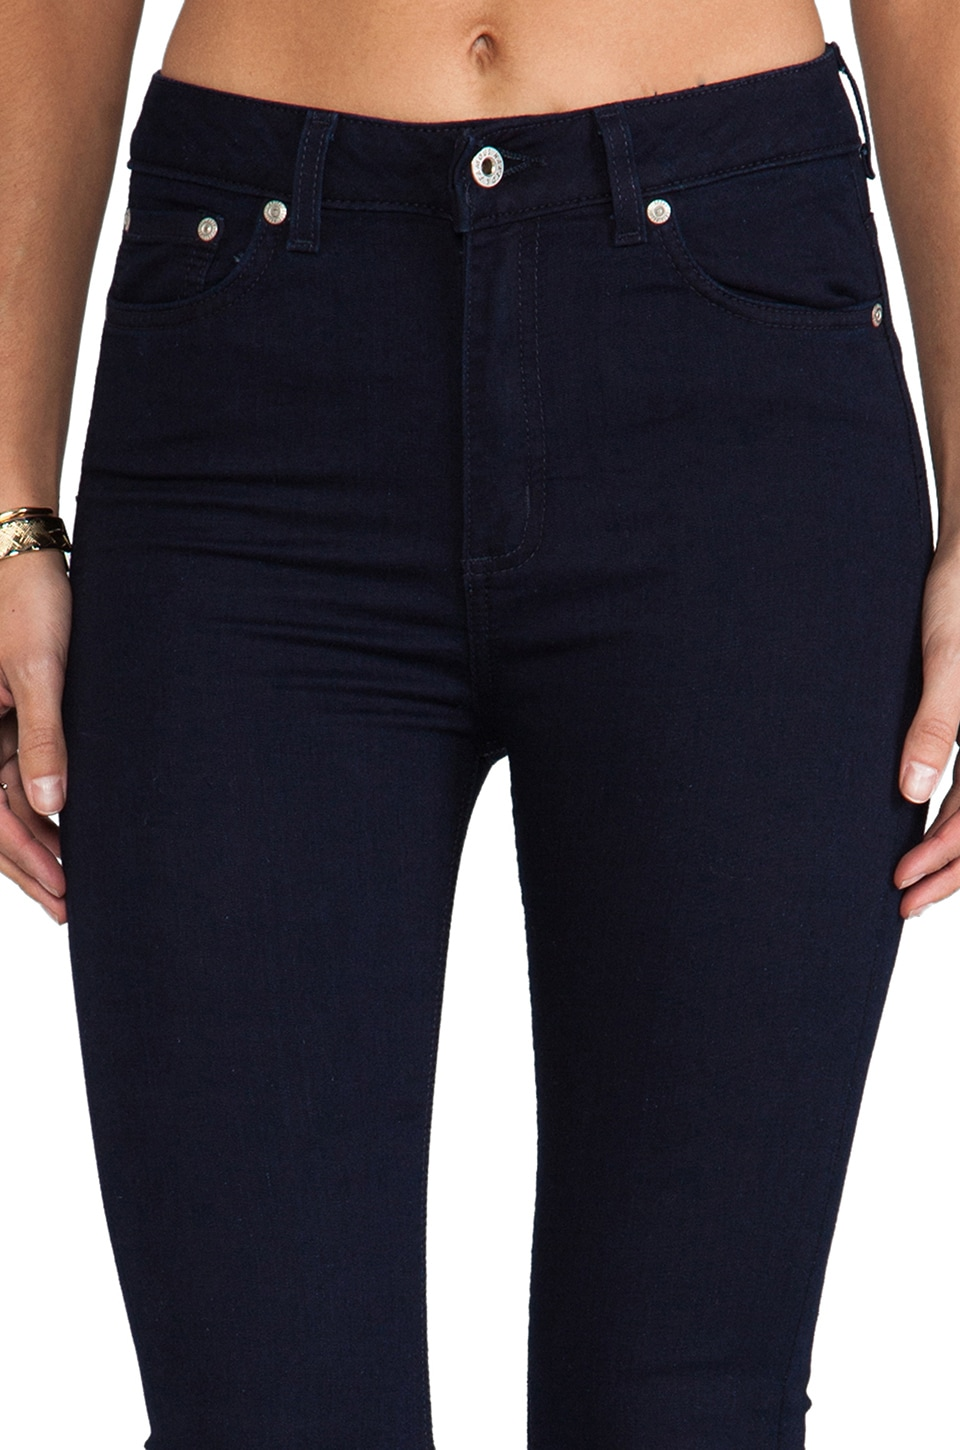 Naked & Famous Denim The High Lightweight Skinny in Indigo